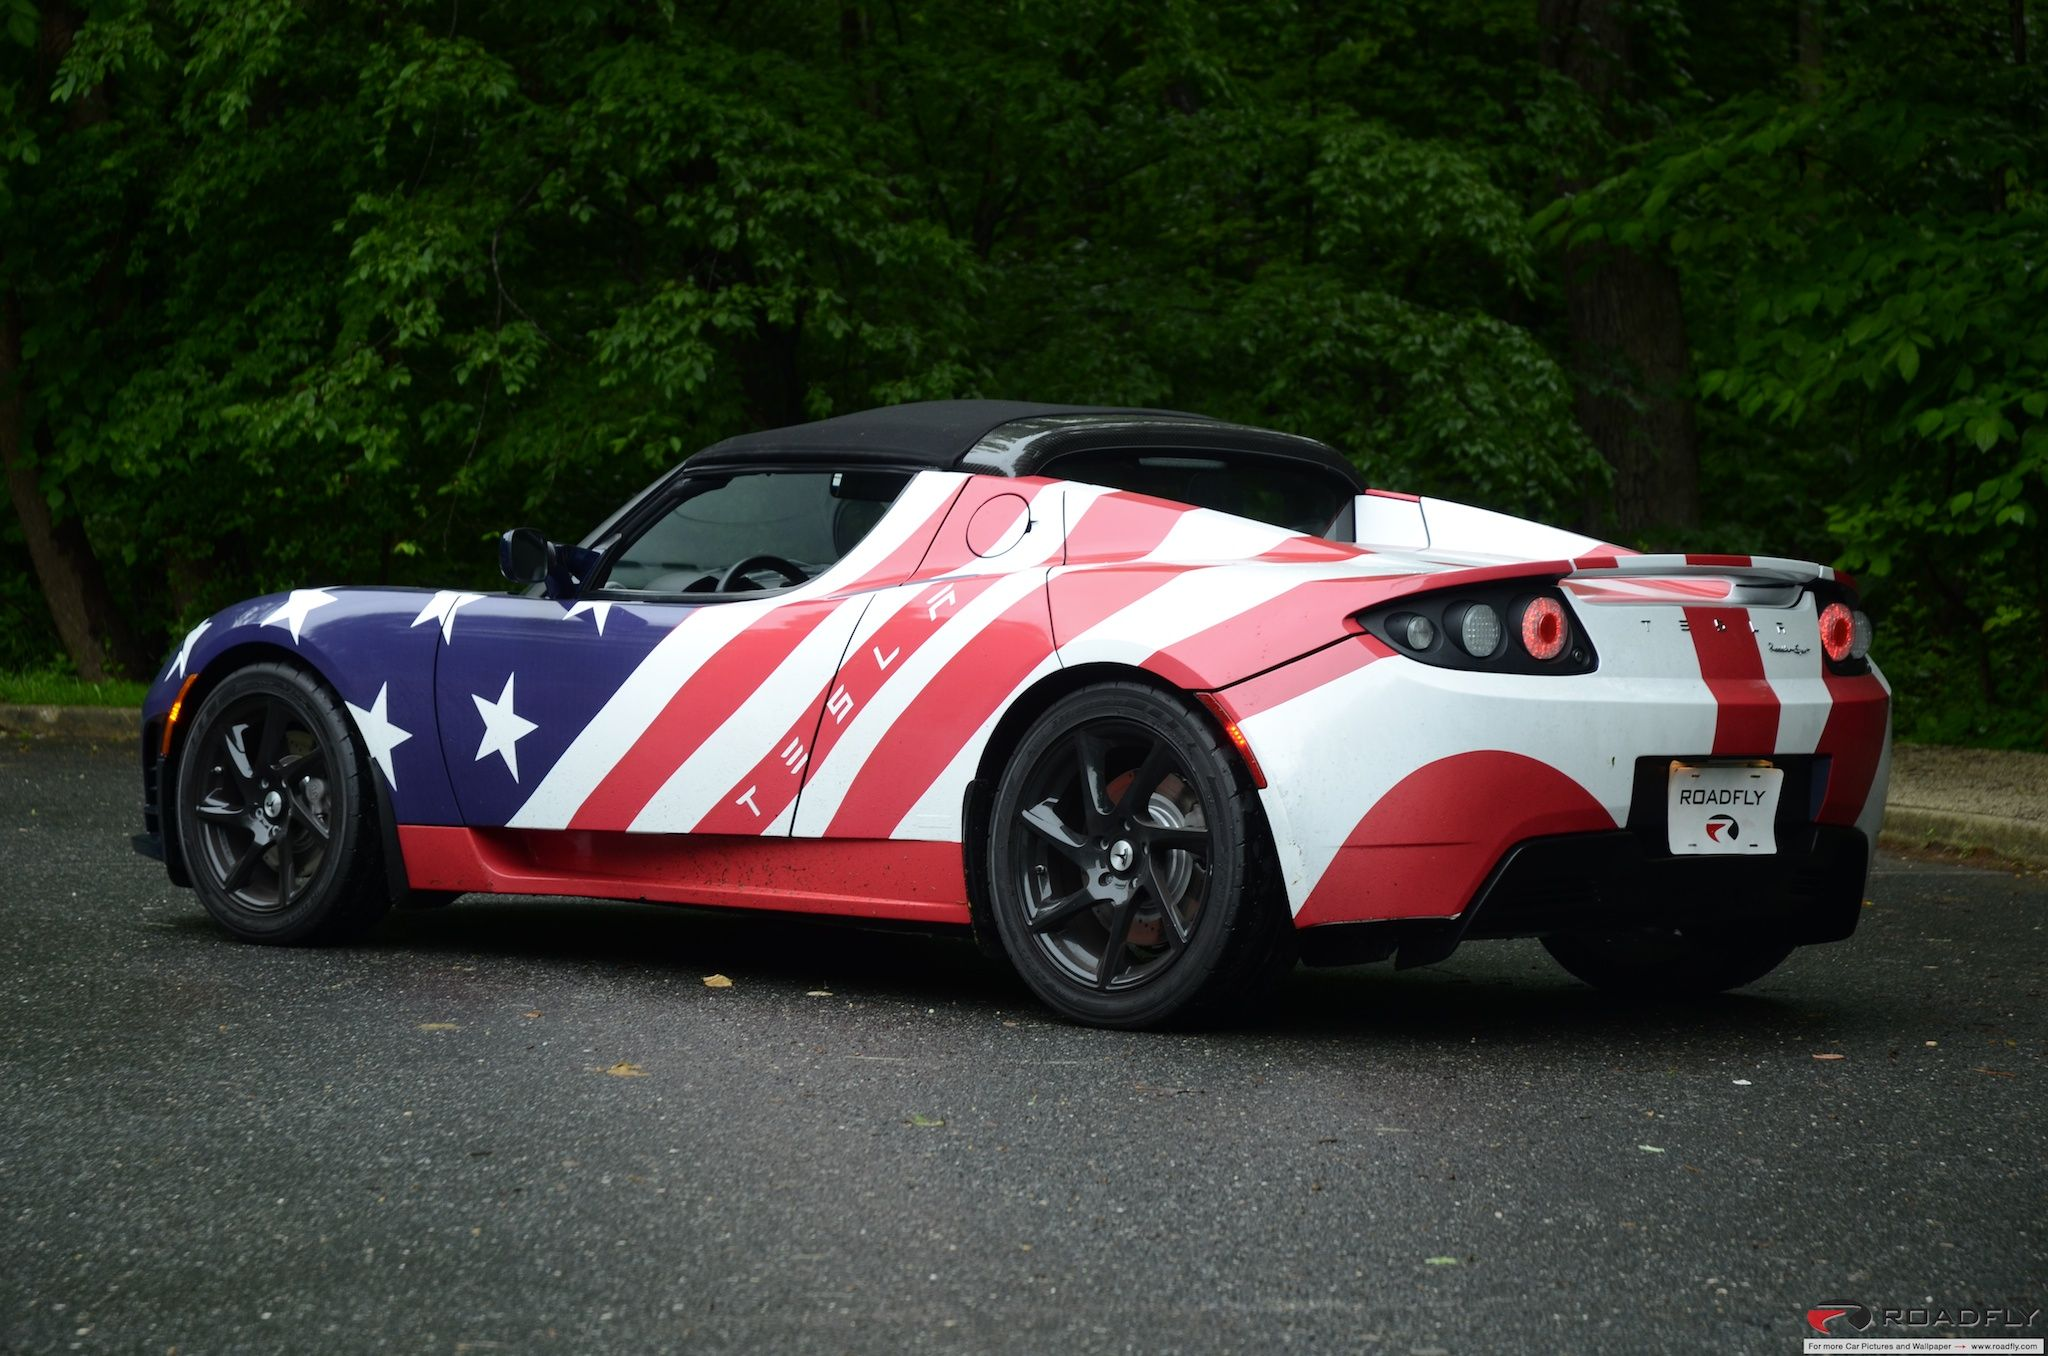 Tesla Roadster, made in the USA. For more, check out www